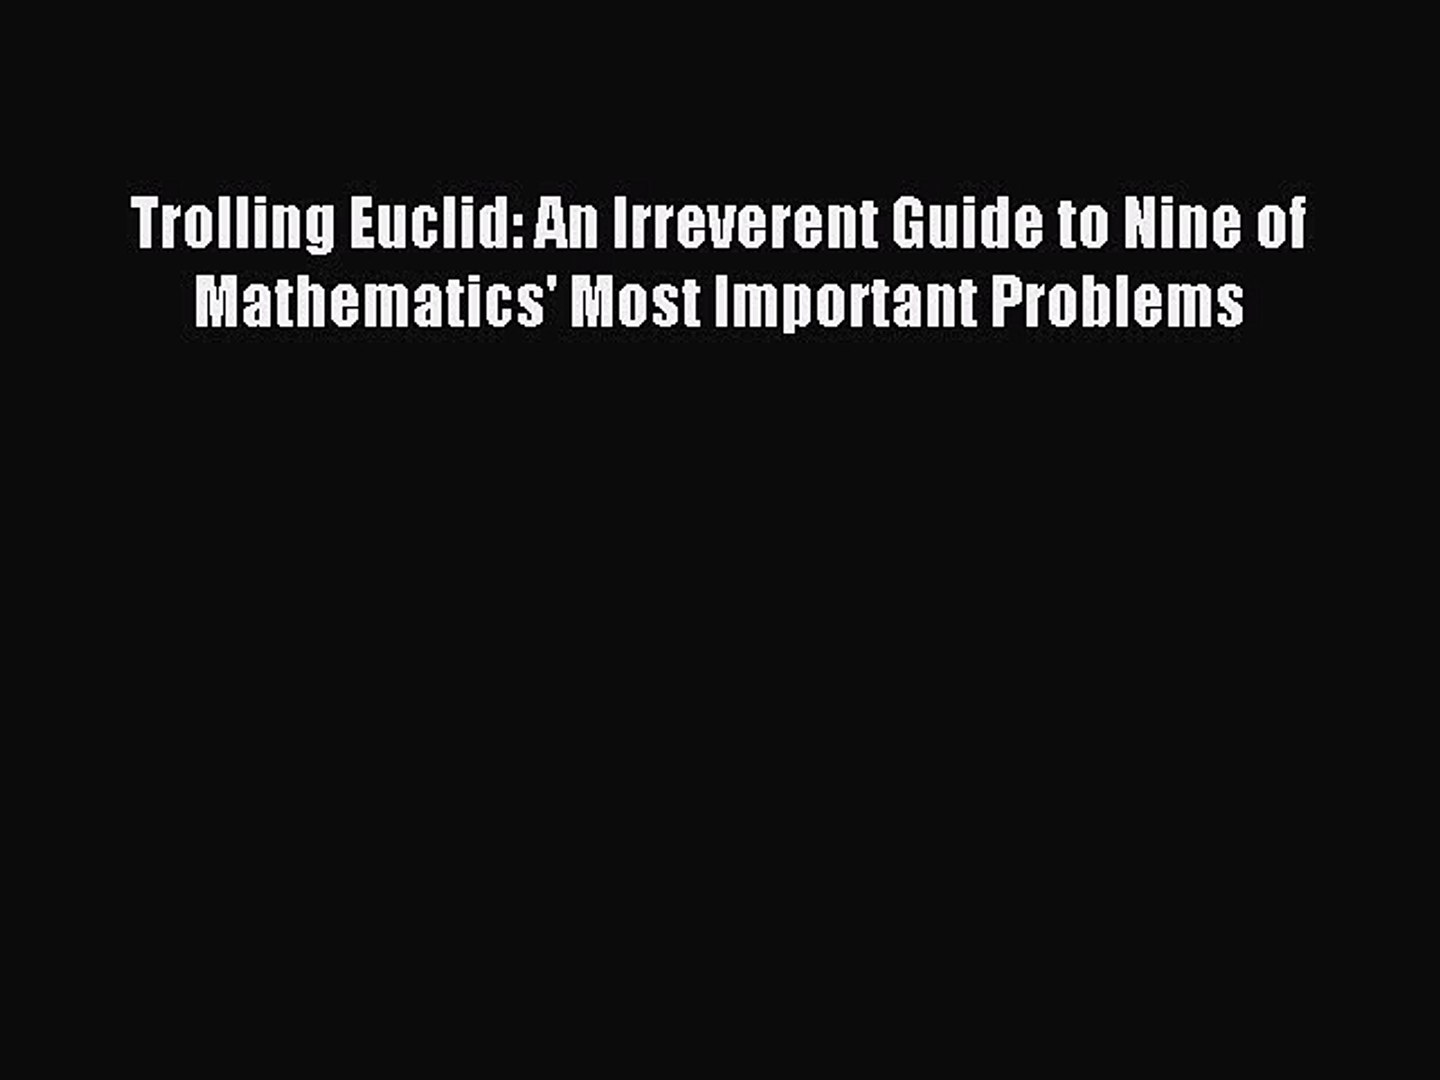 Trolling Euclid: An Irreverent Guide to Nine of Mathematics Most Important Problems